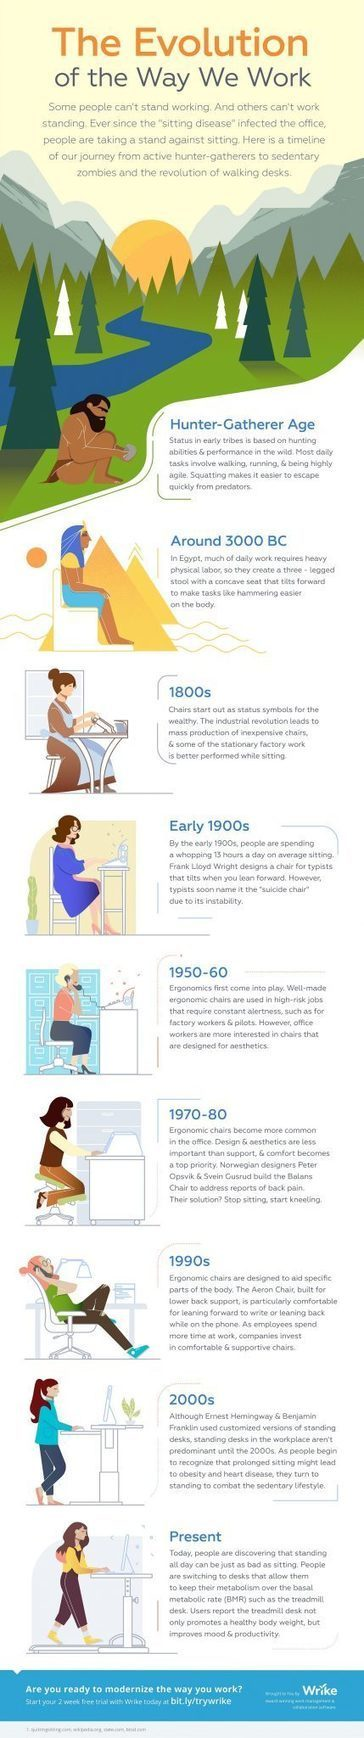 The Evolution of the Way We Work Infographic | @liminno | Scoop.it